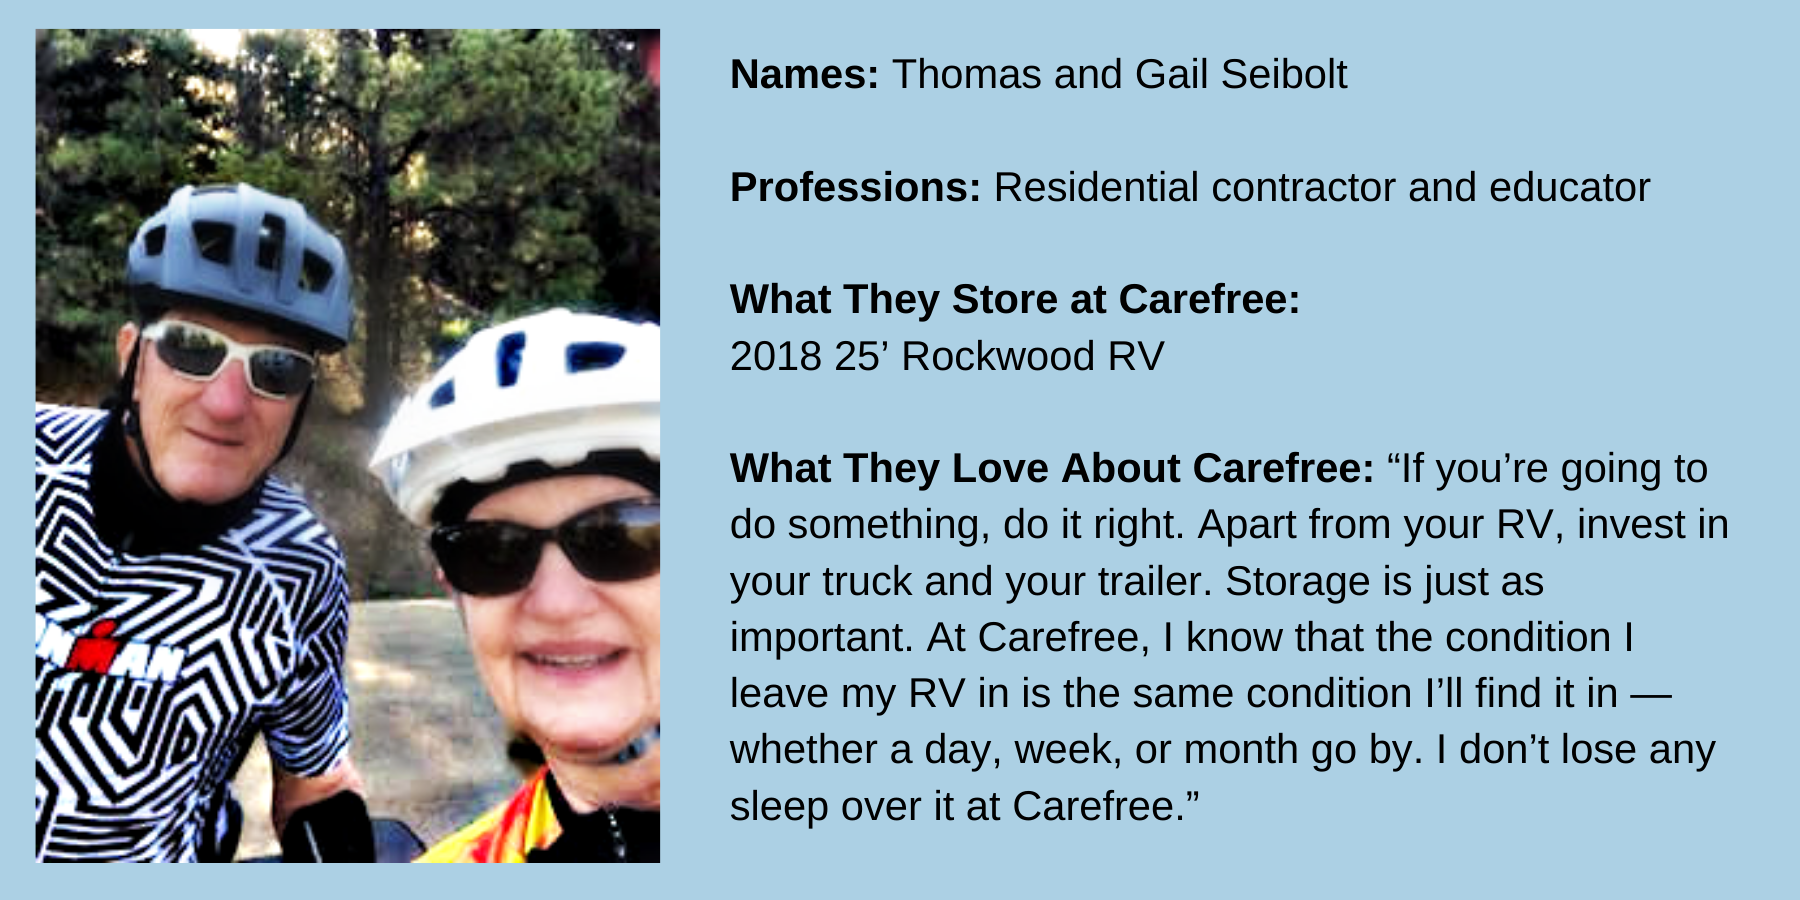 Customers Tom and Gail Seibolt love biking near Carefree Covered RV Storage